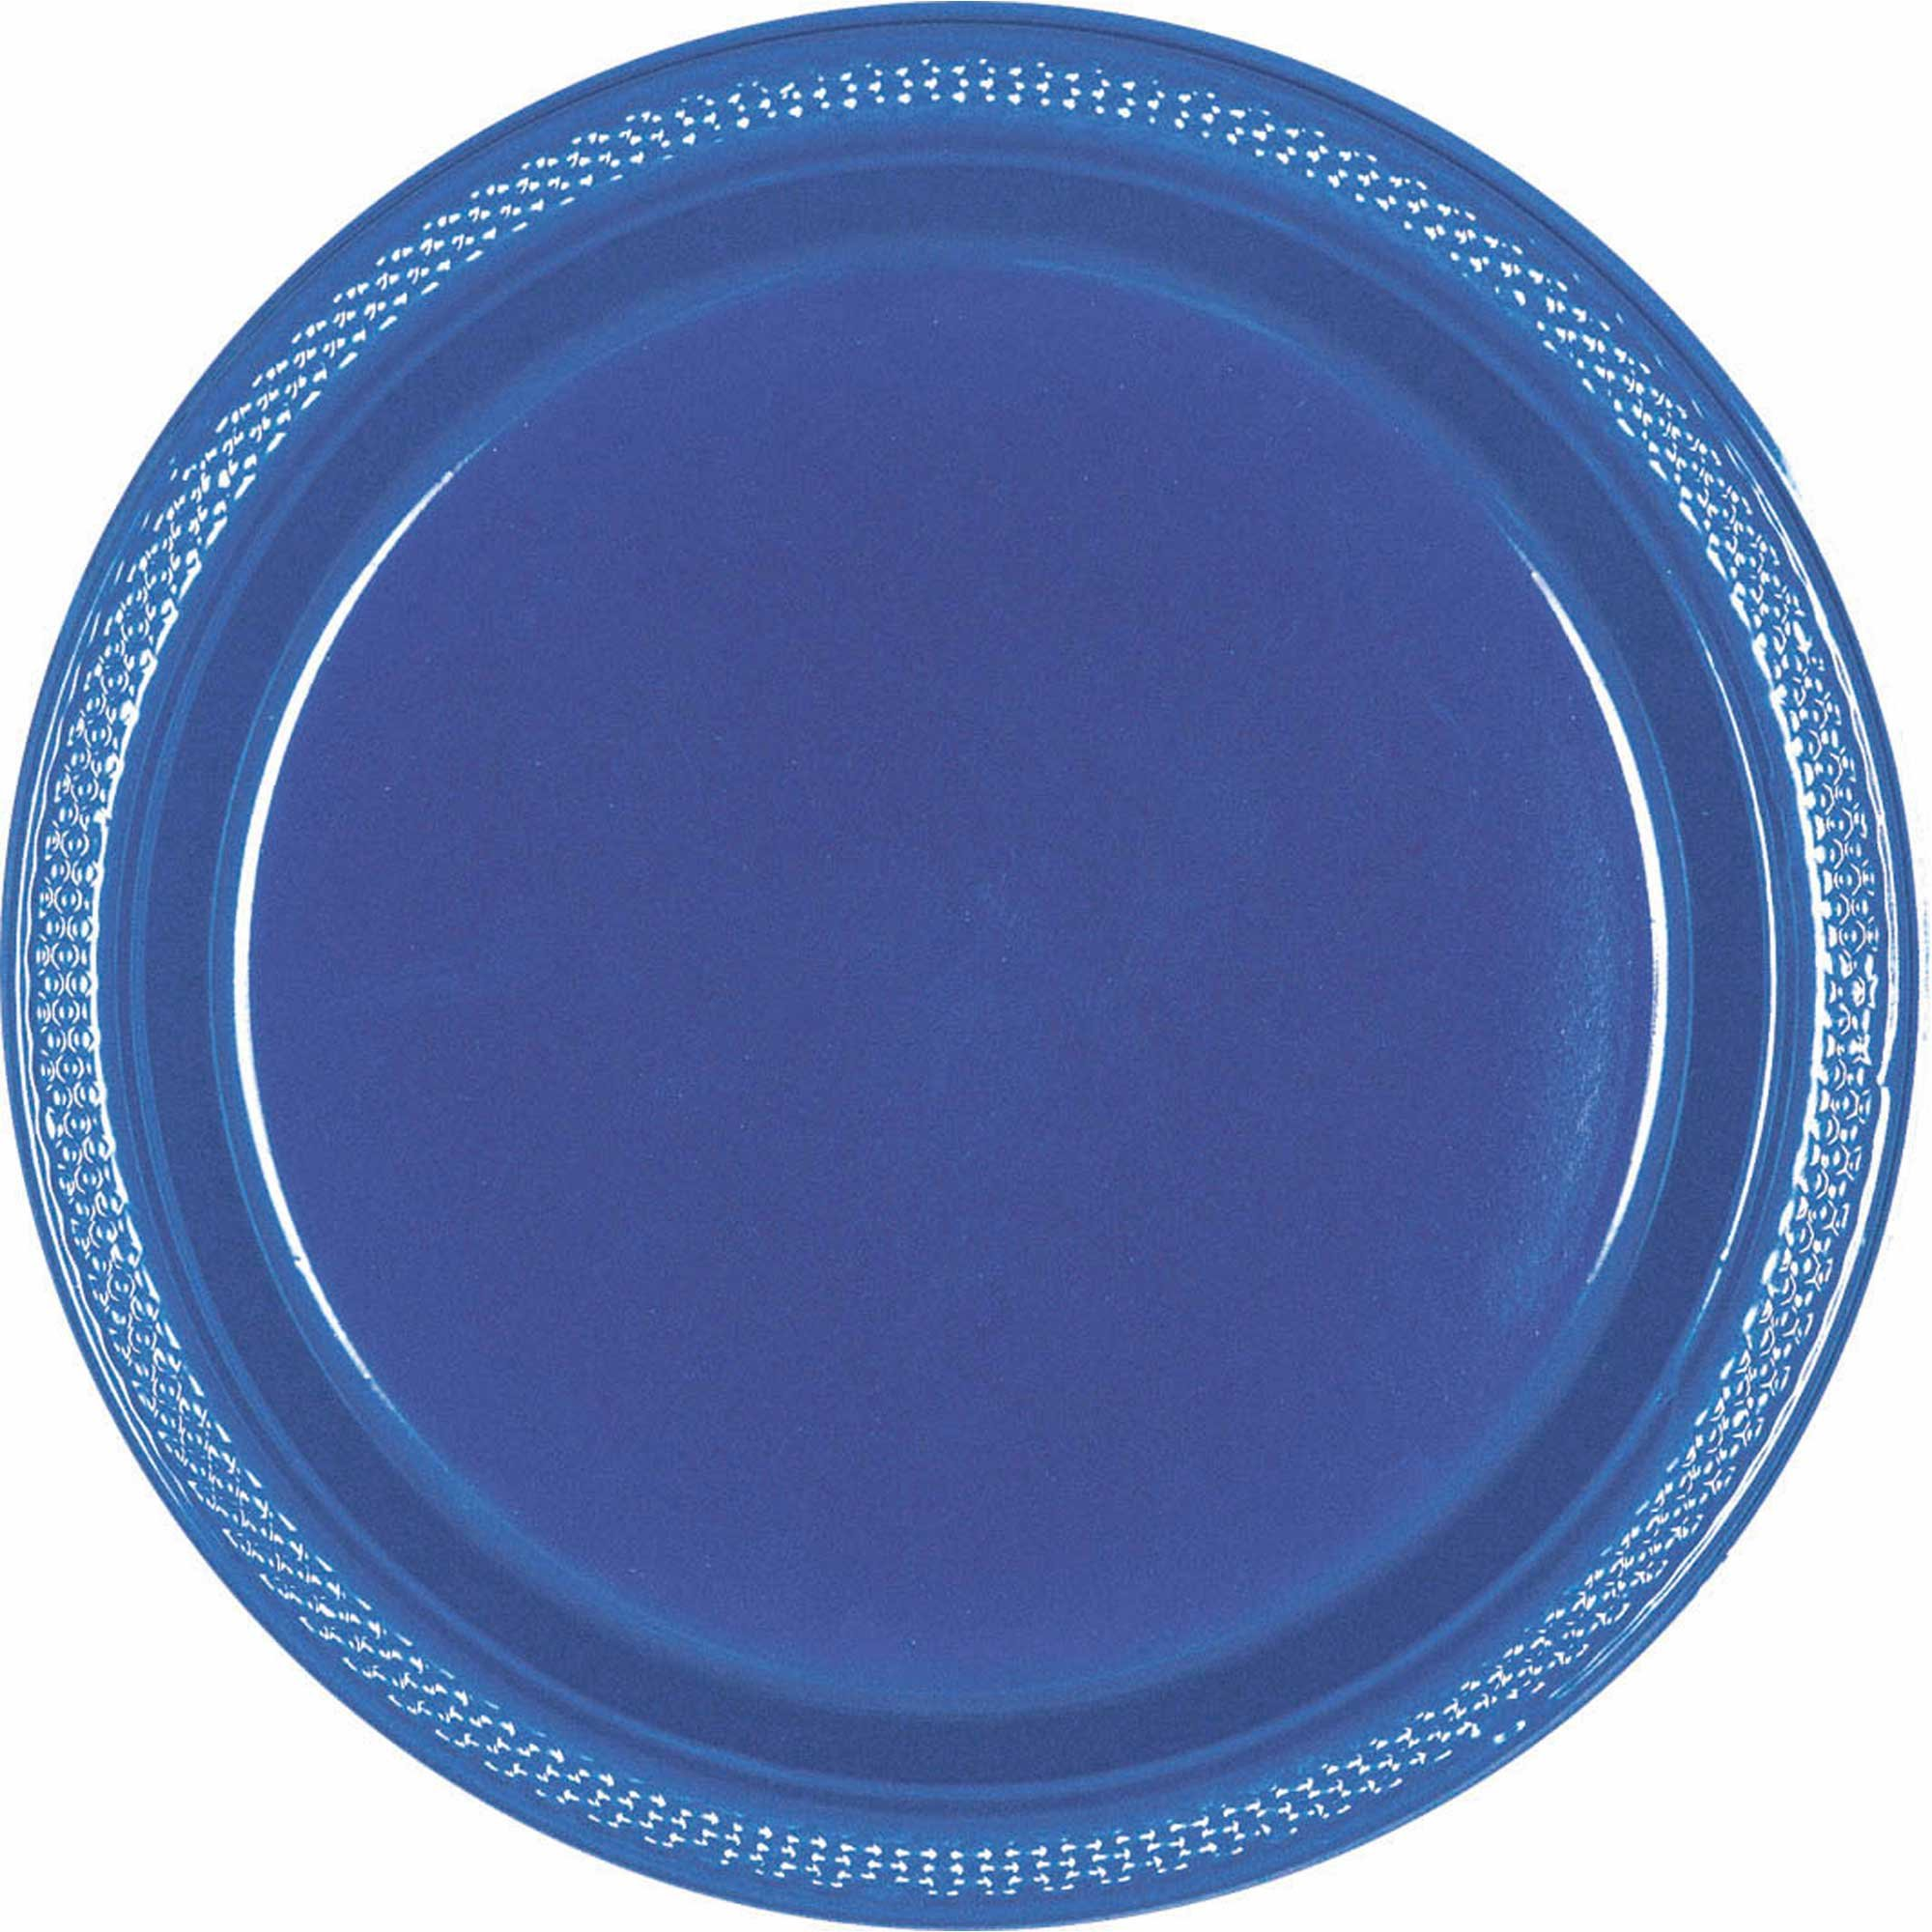 Plastic Plates 26cm 20CT Navy Flag Blue